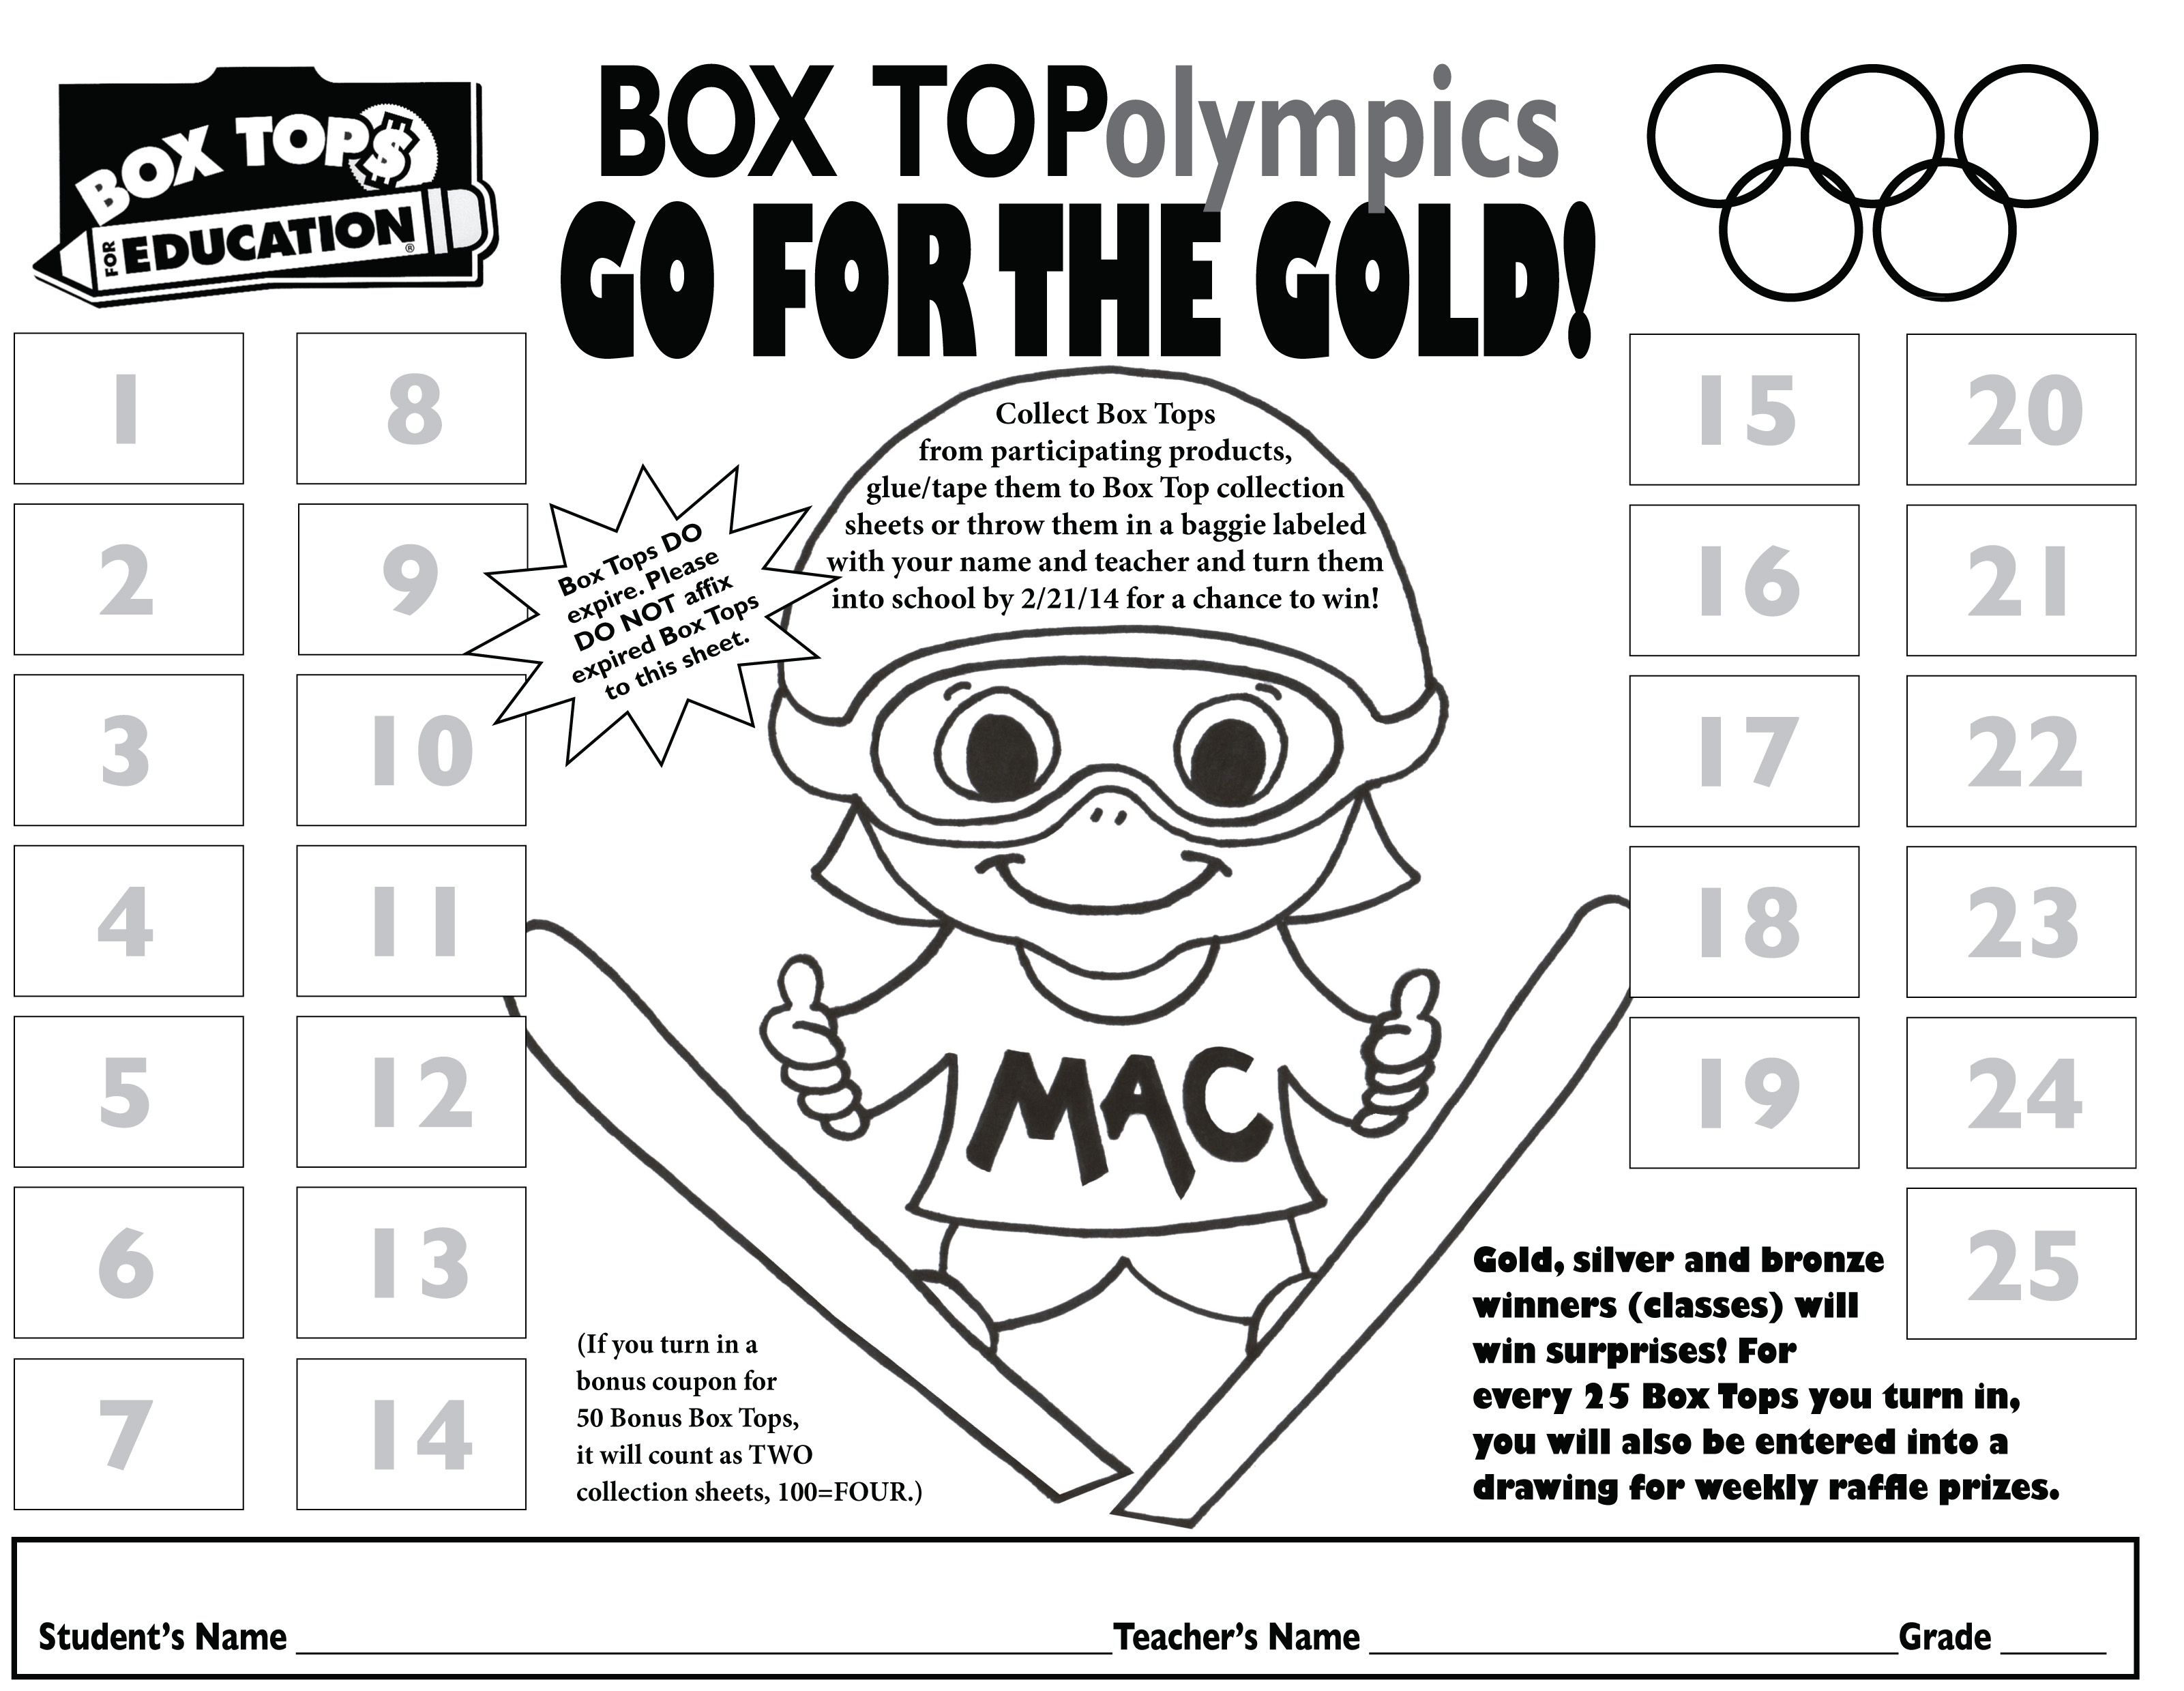 Winter Olympics Collection Sheet